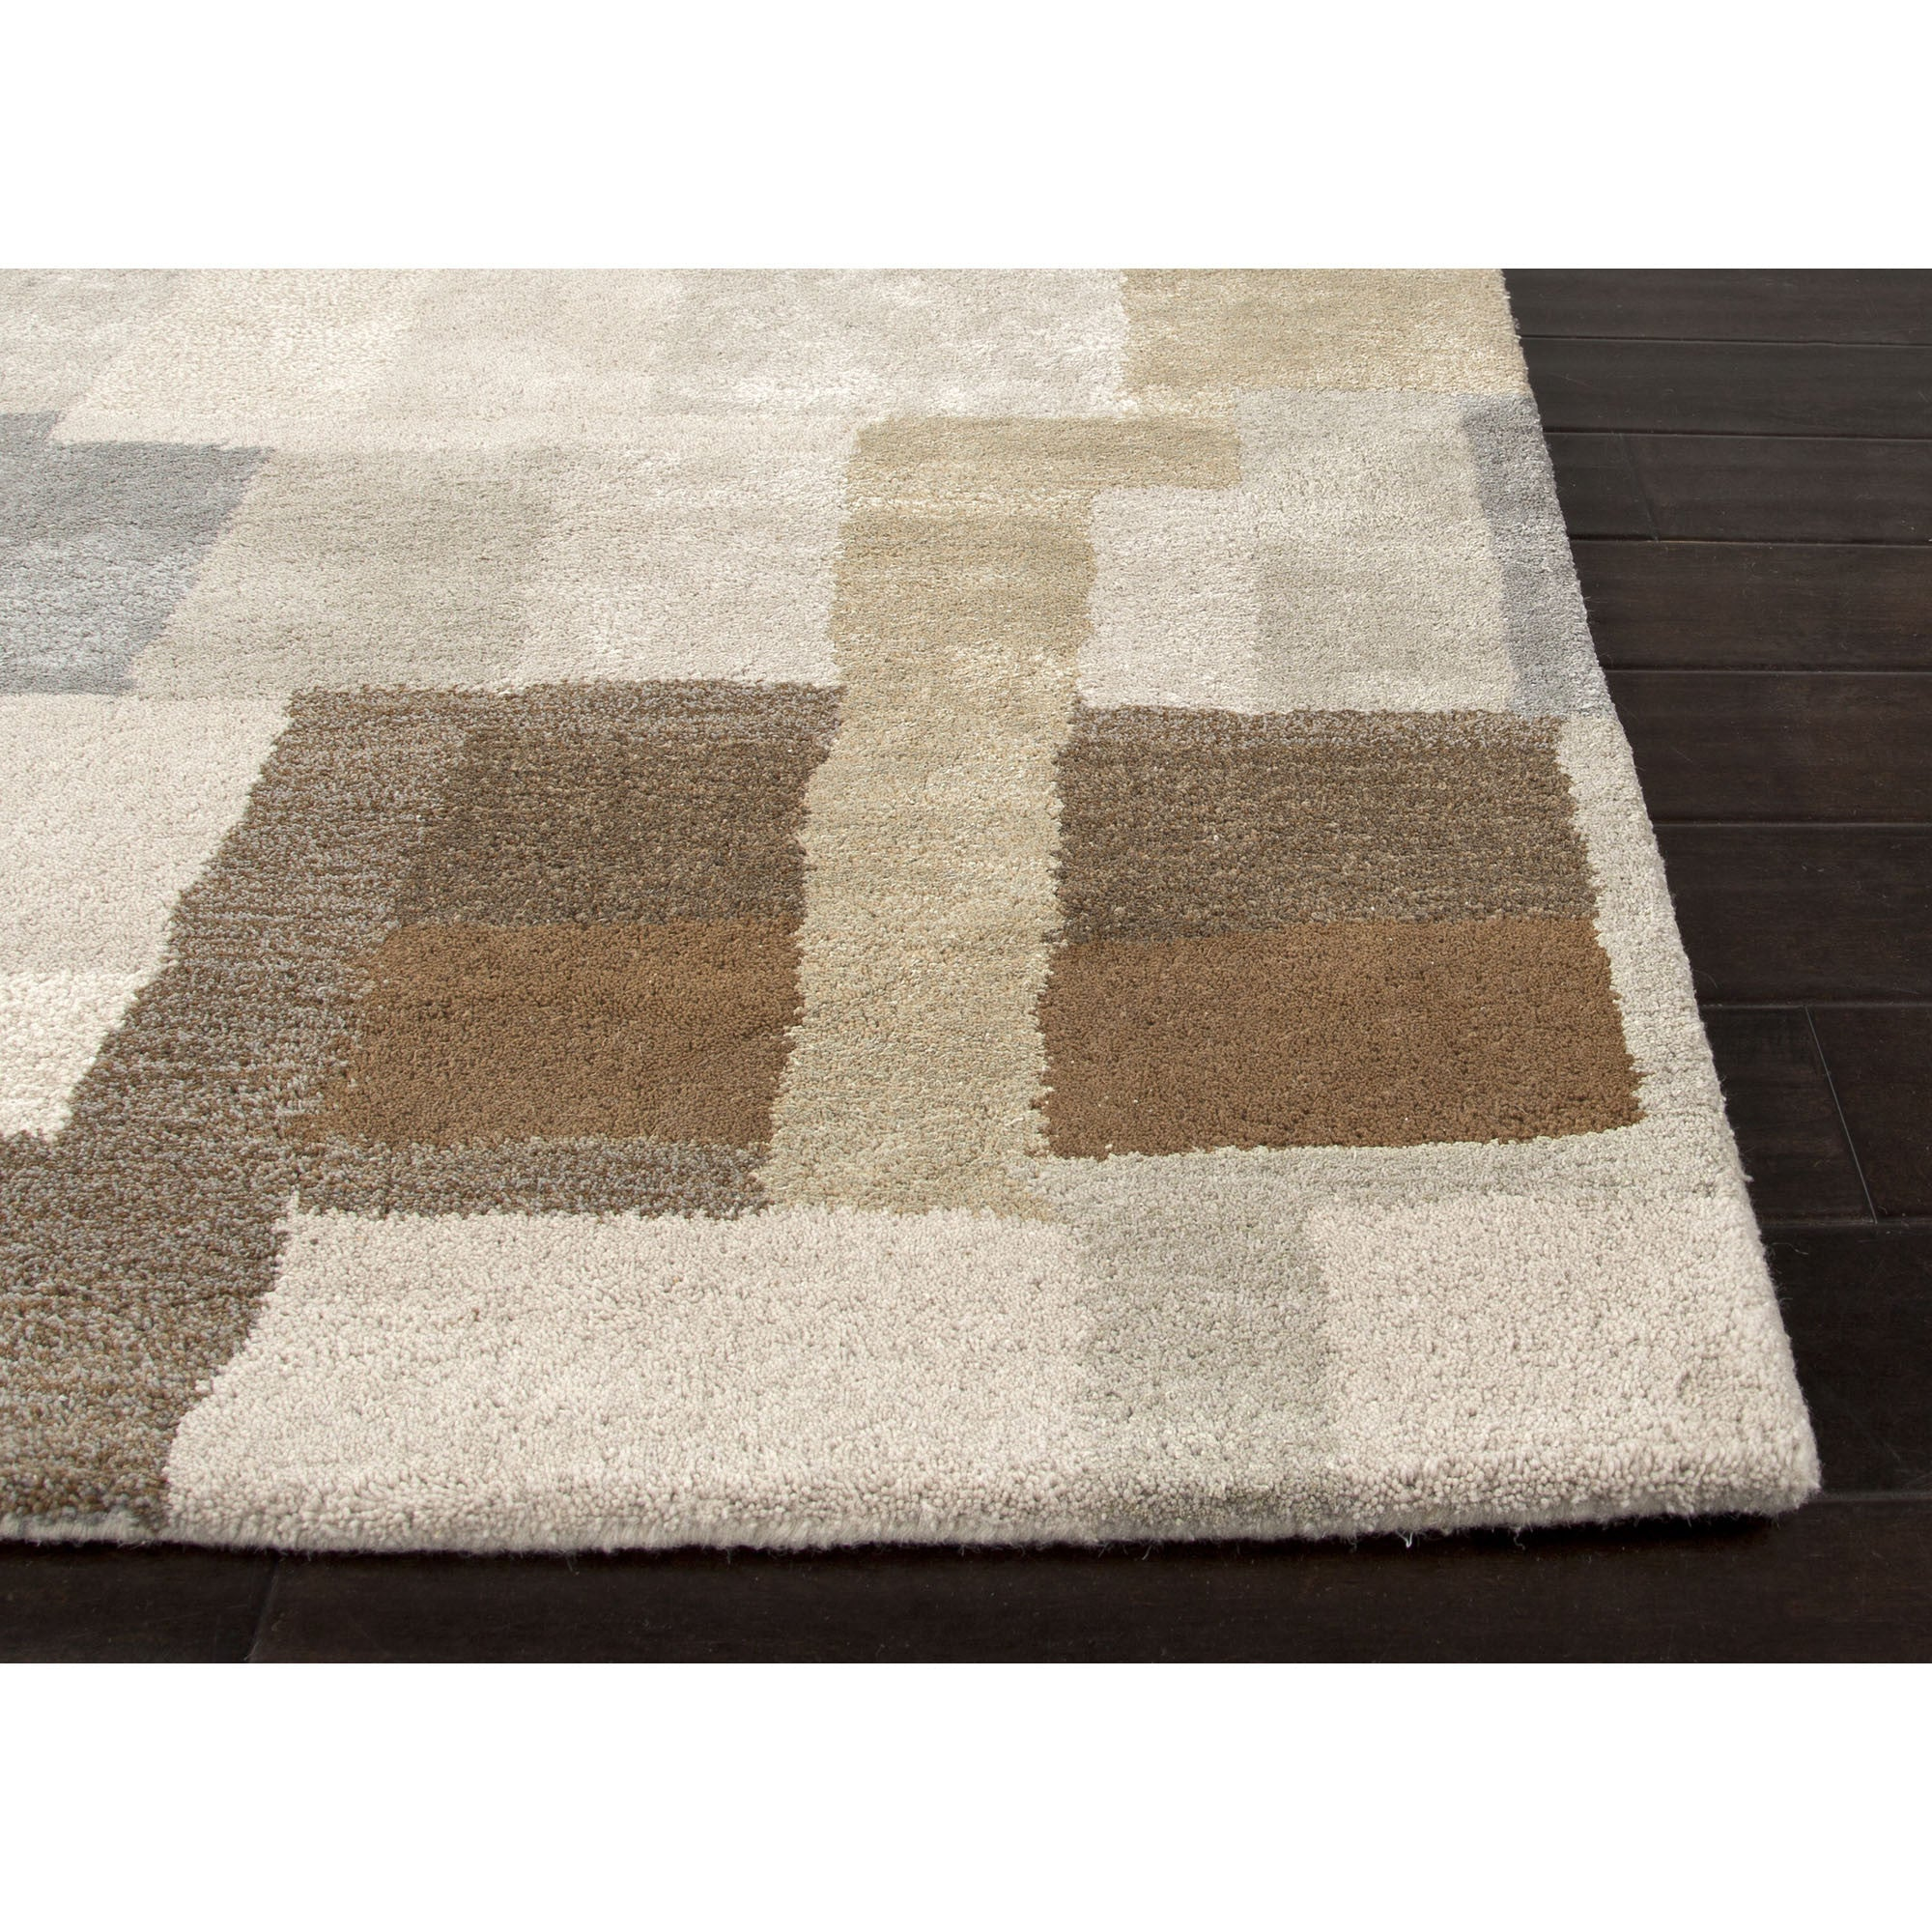 Jaipur rugs modern geometric pattern gray brown wool and for Grey and tan rug